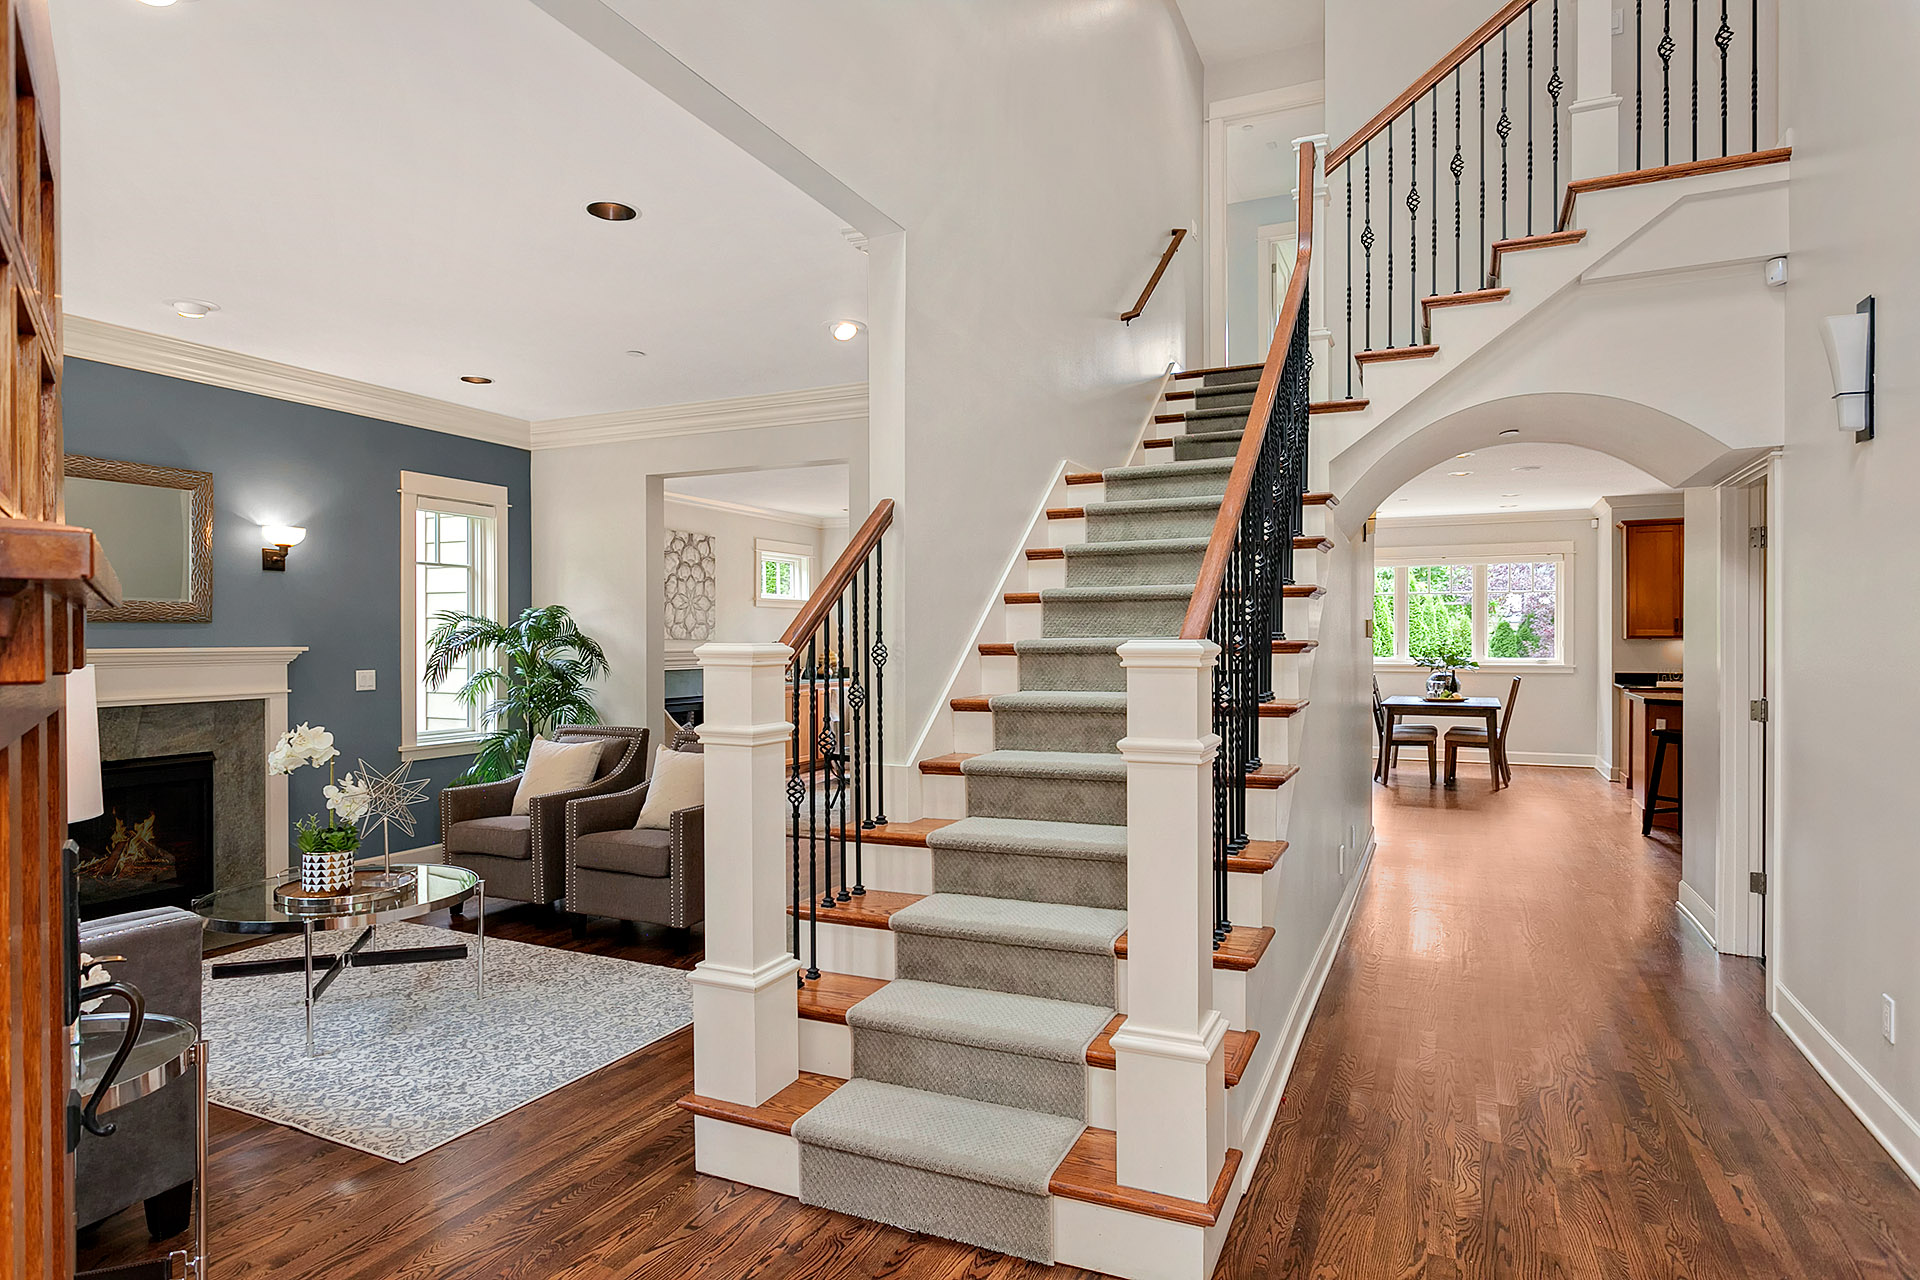 How to Photograph Entrances and Staircases for Real Estate